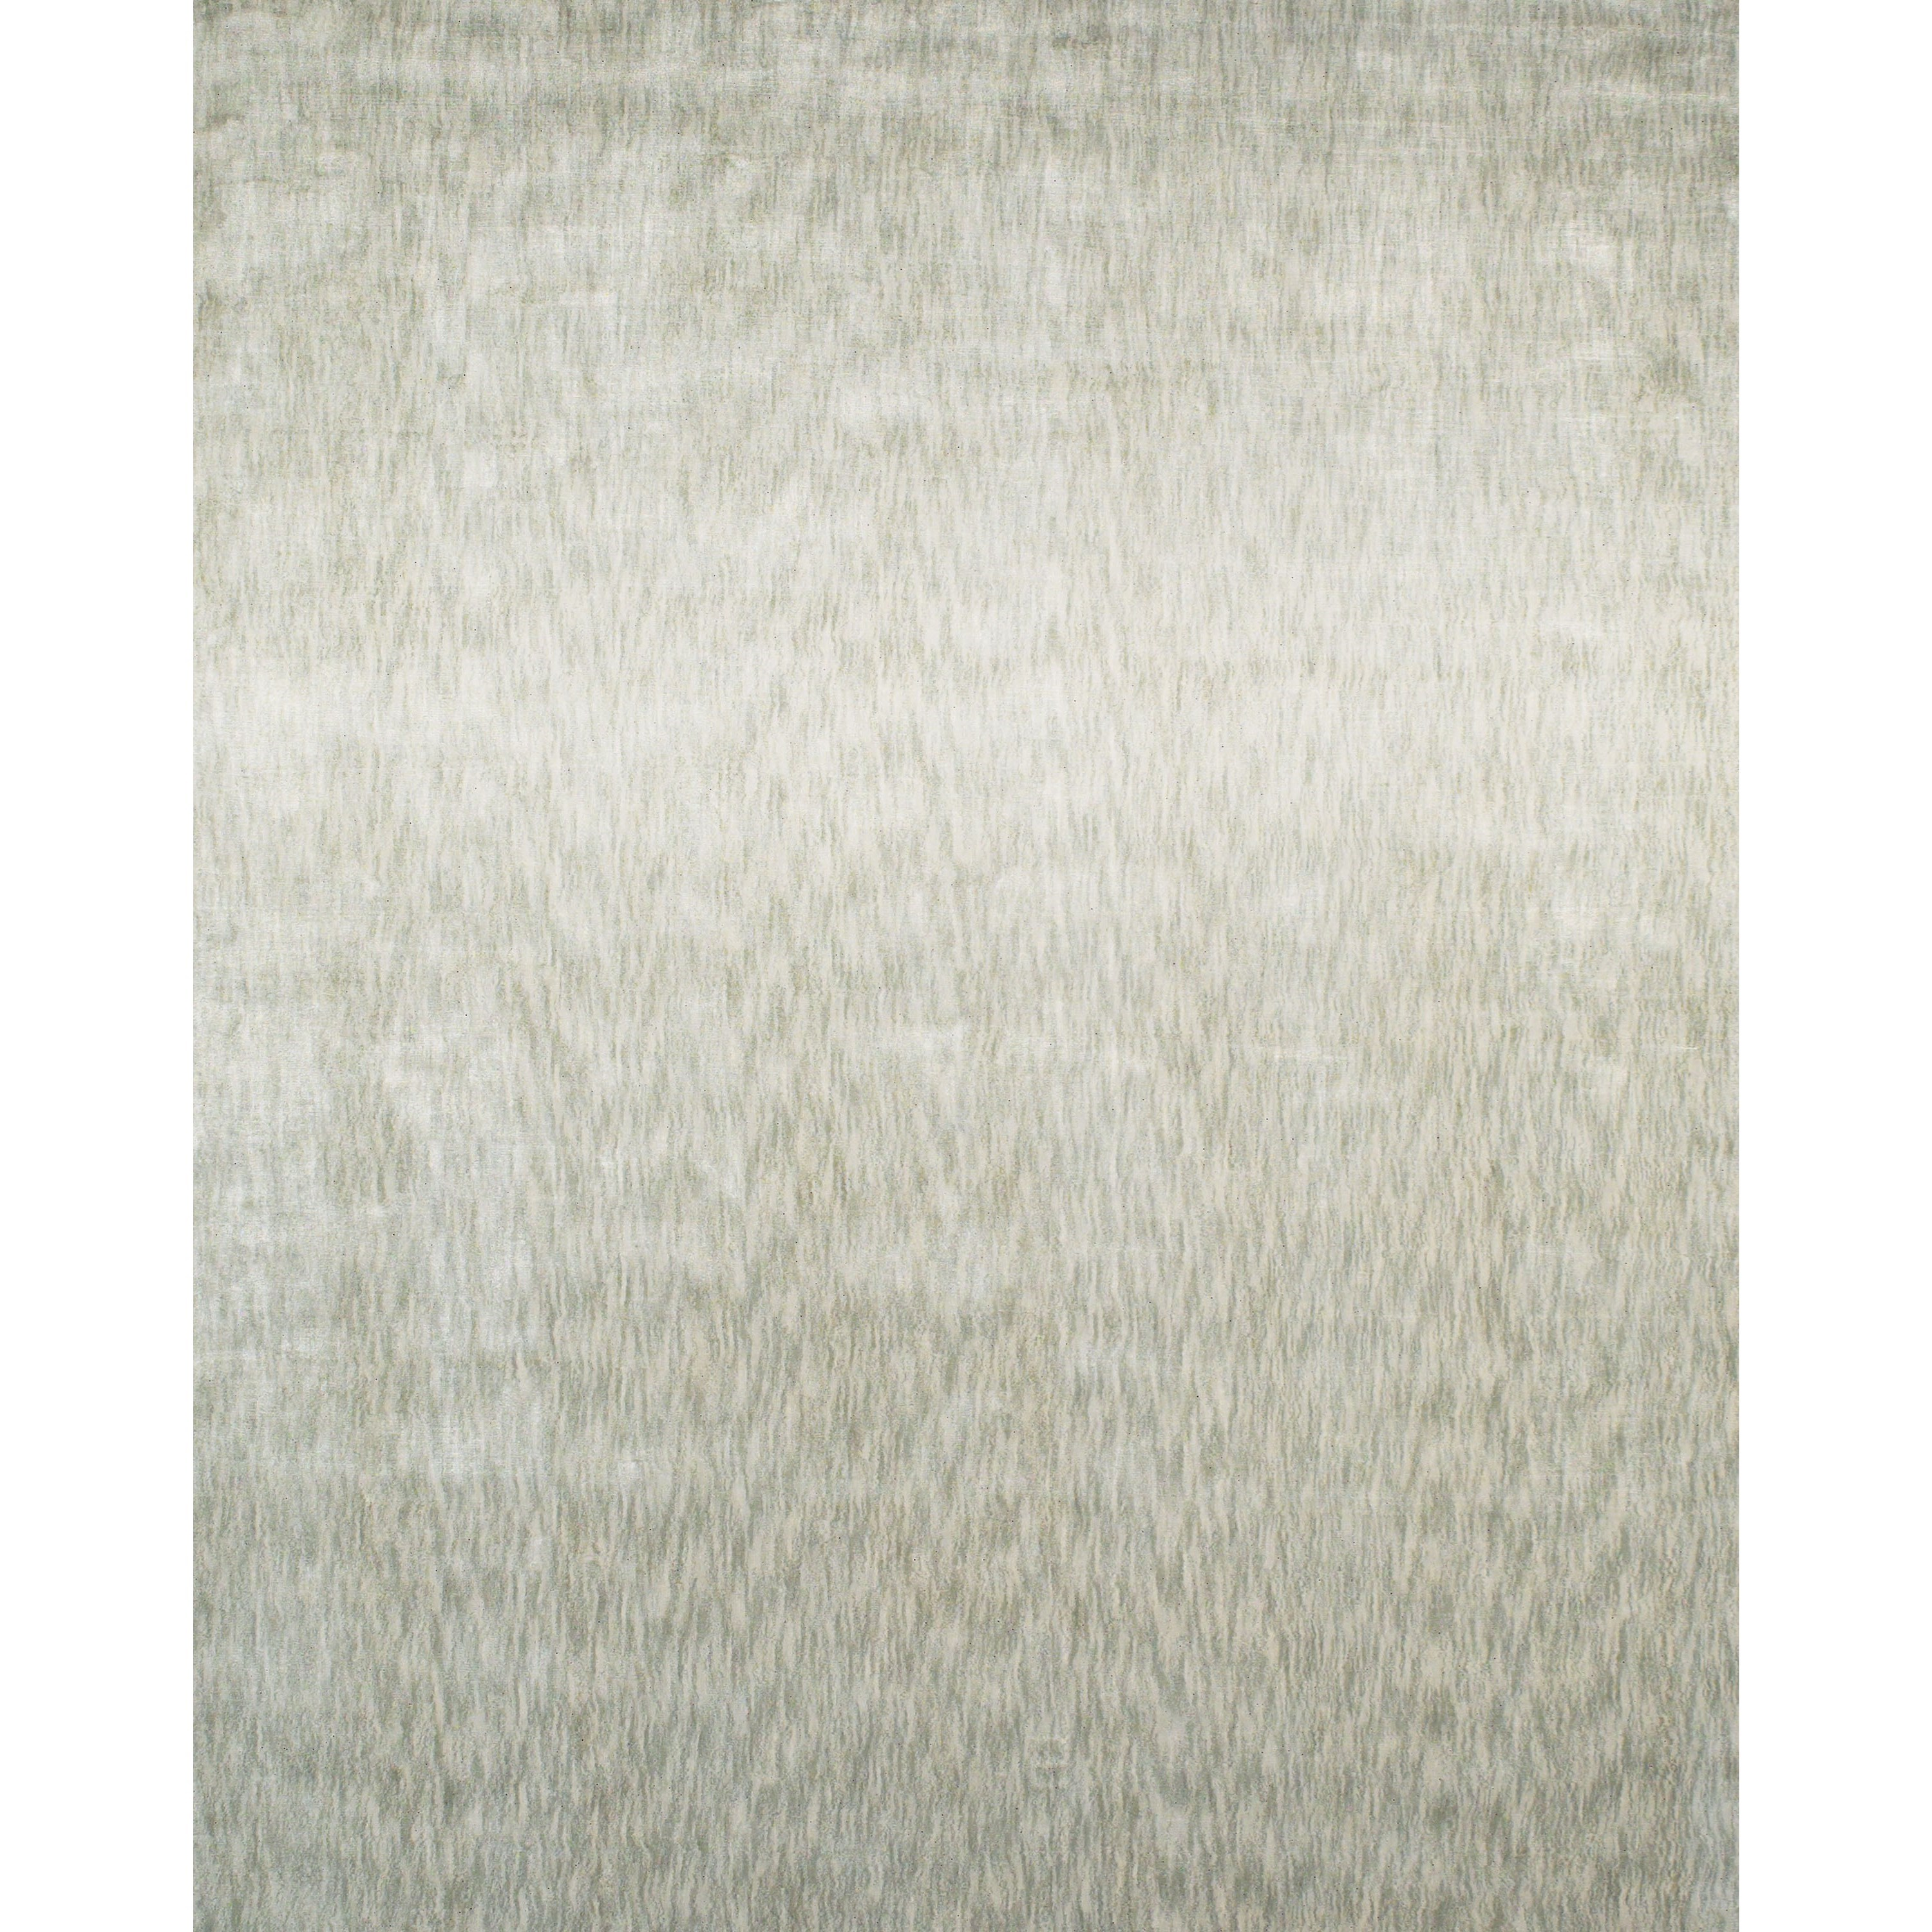 "Marlowe Ivory 9'-6"" x 13'-6"" Area Rug by Feizy Rugs at Sprintz Furniture"